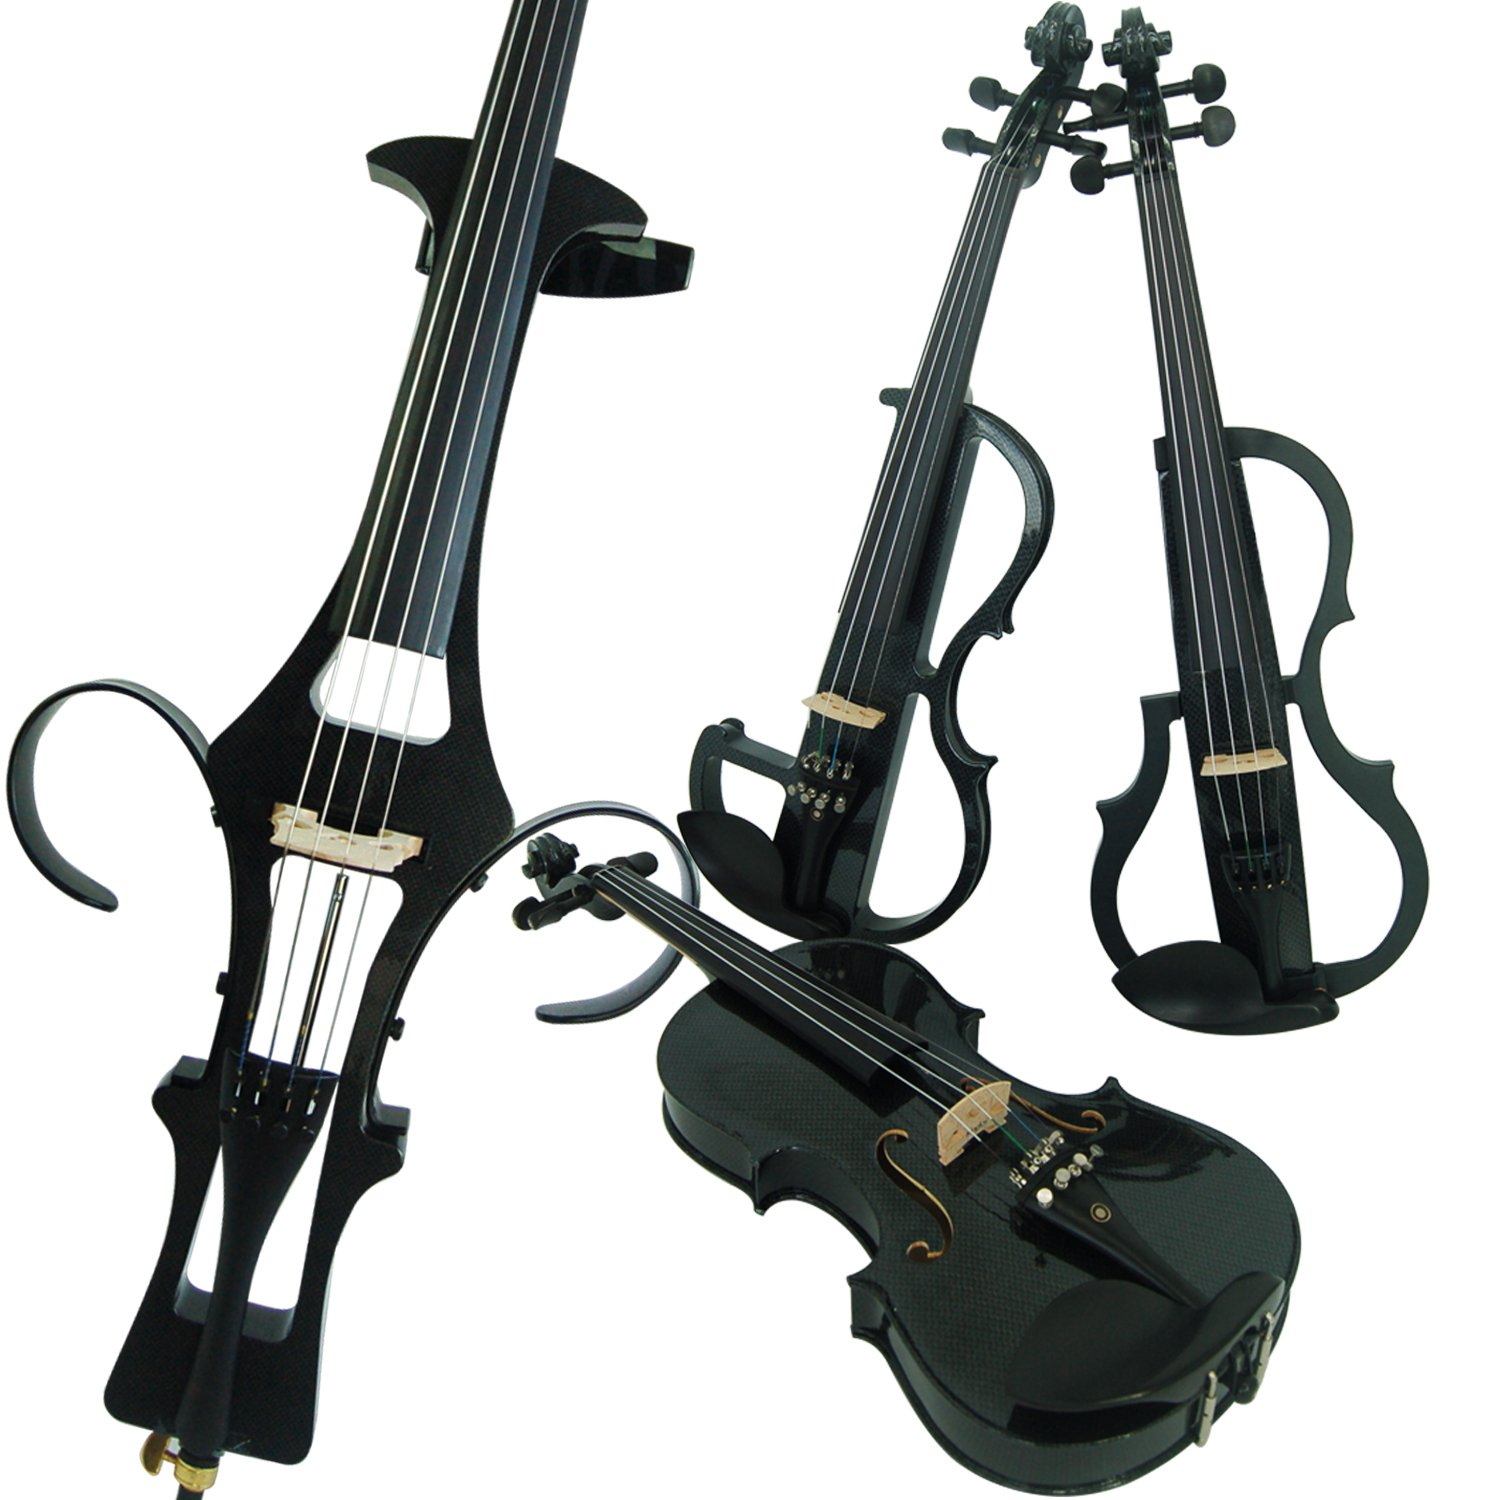 Leeche Wood Electric Violin Full Size 4/4 Intermediate-A Electric Silent Carbon Fiber Violin Kit With Case, Bow, Rosin, headphones, Shoulder Rest, Strings, Finger Guide DSZALE-E311